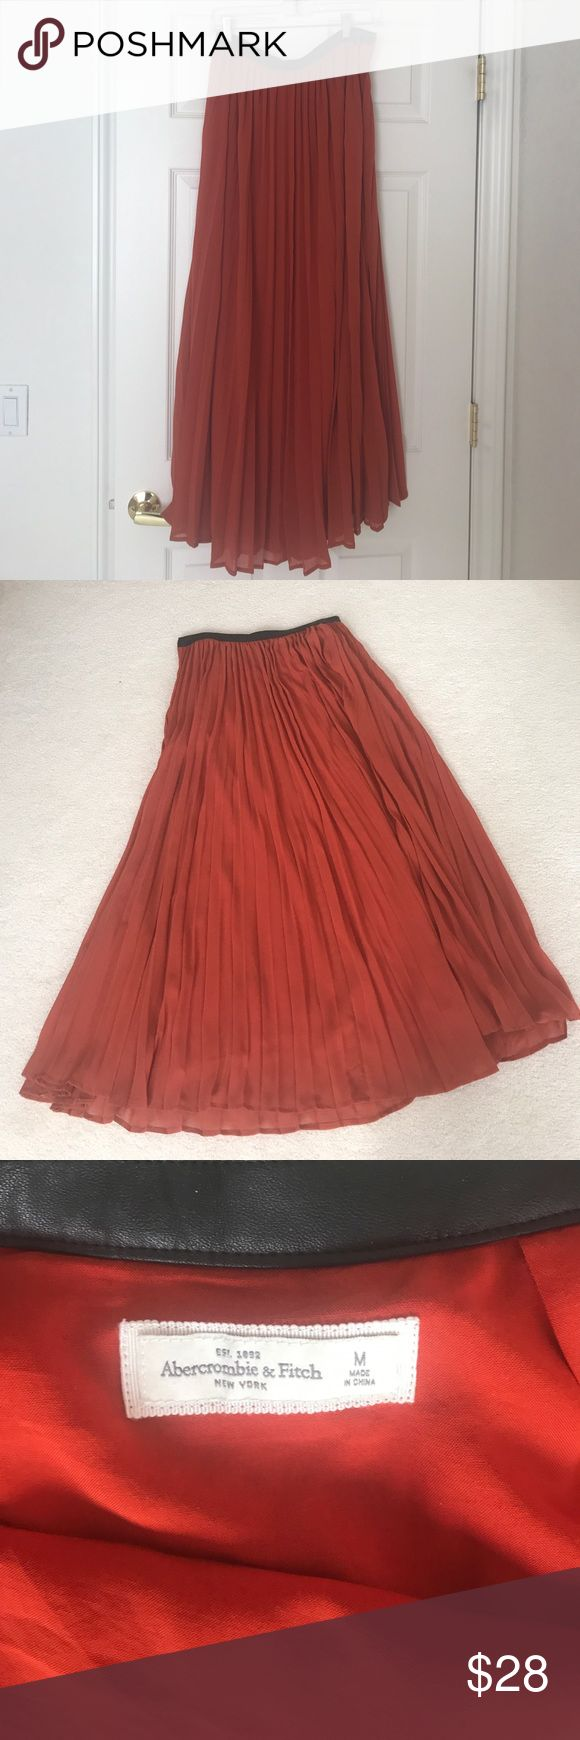 "ABF Pleated Chiffon Maxi Skirt &Faux Leather belt. ABF sheer chiffon overlay maxi skirt with attached faux leather waist with a side zipper and hook. Pumpkin color. Size M.  Gently used and very good condition. 15"" waist and 39"" Length. Abercrombie & Fitch Skirts Maxi"